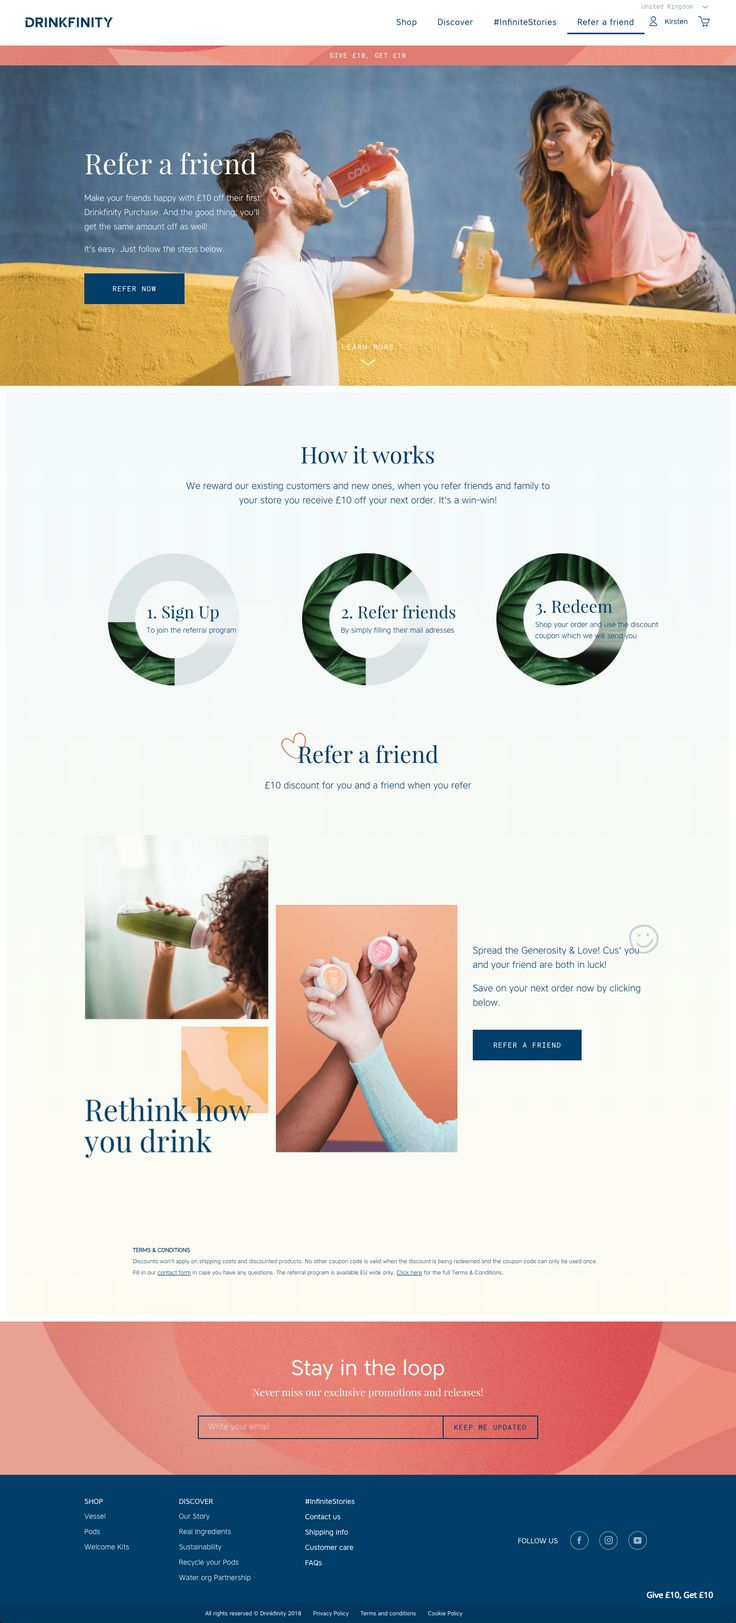 Drinkfinity explains their referral program with a beautiful branded page that breaks their program down into easy to digest sections.